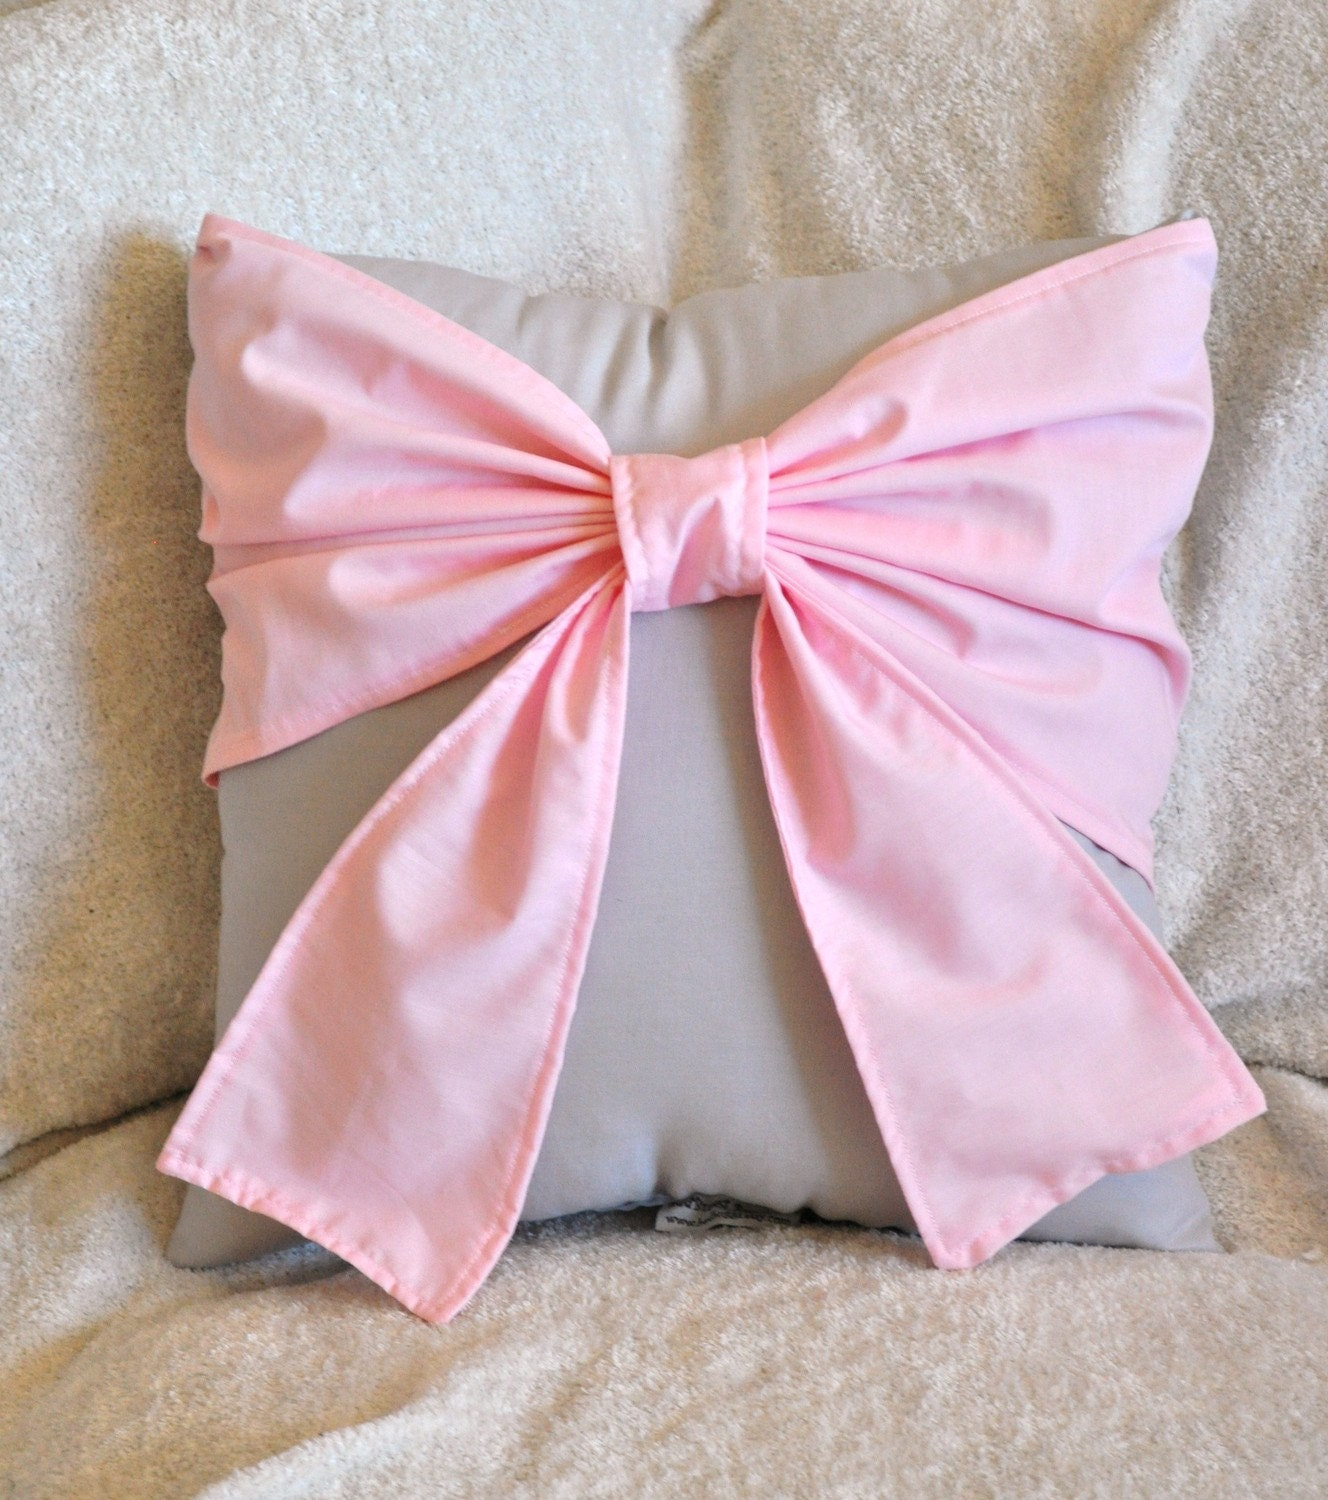 Decorative Pillows Etsy : Throw Pillow Decorative Pillow Light Pink Big Bow by bedbuggs